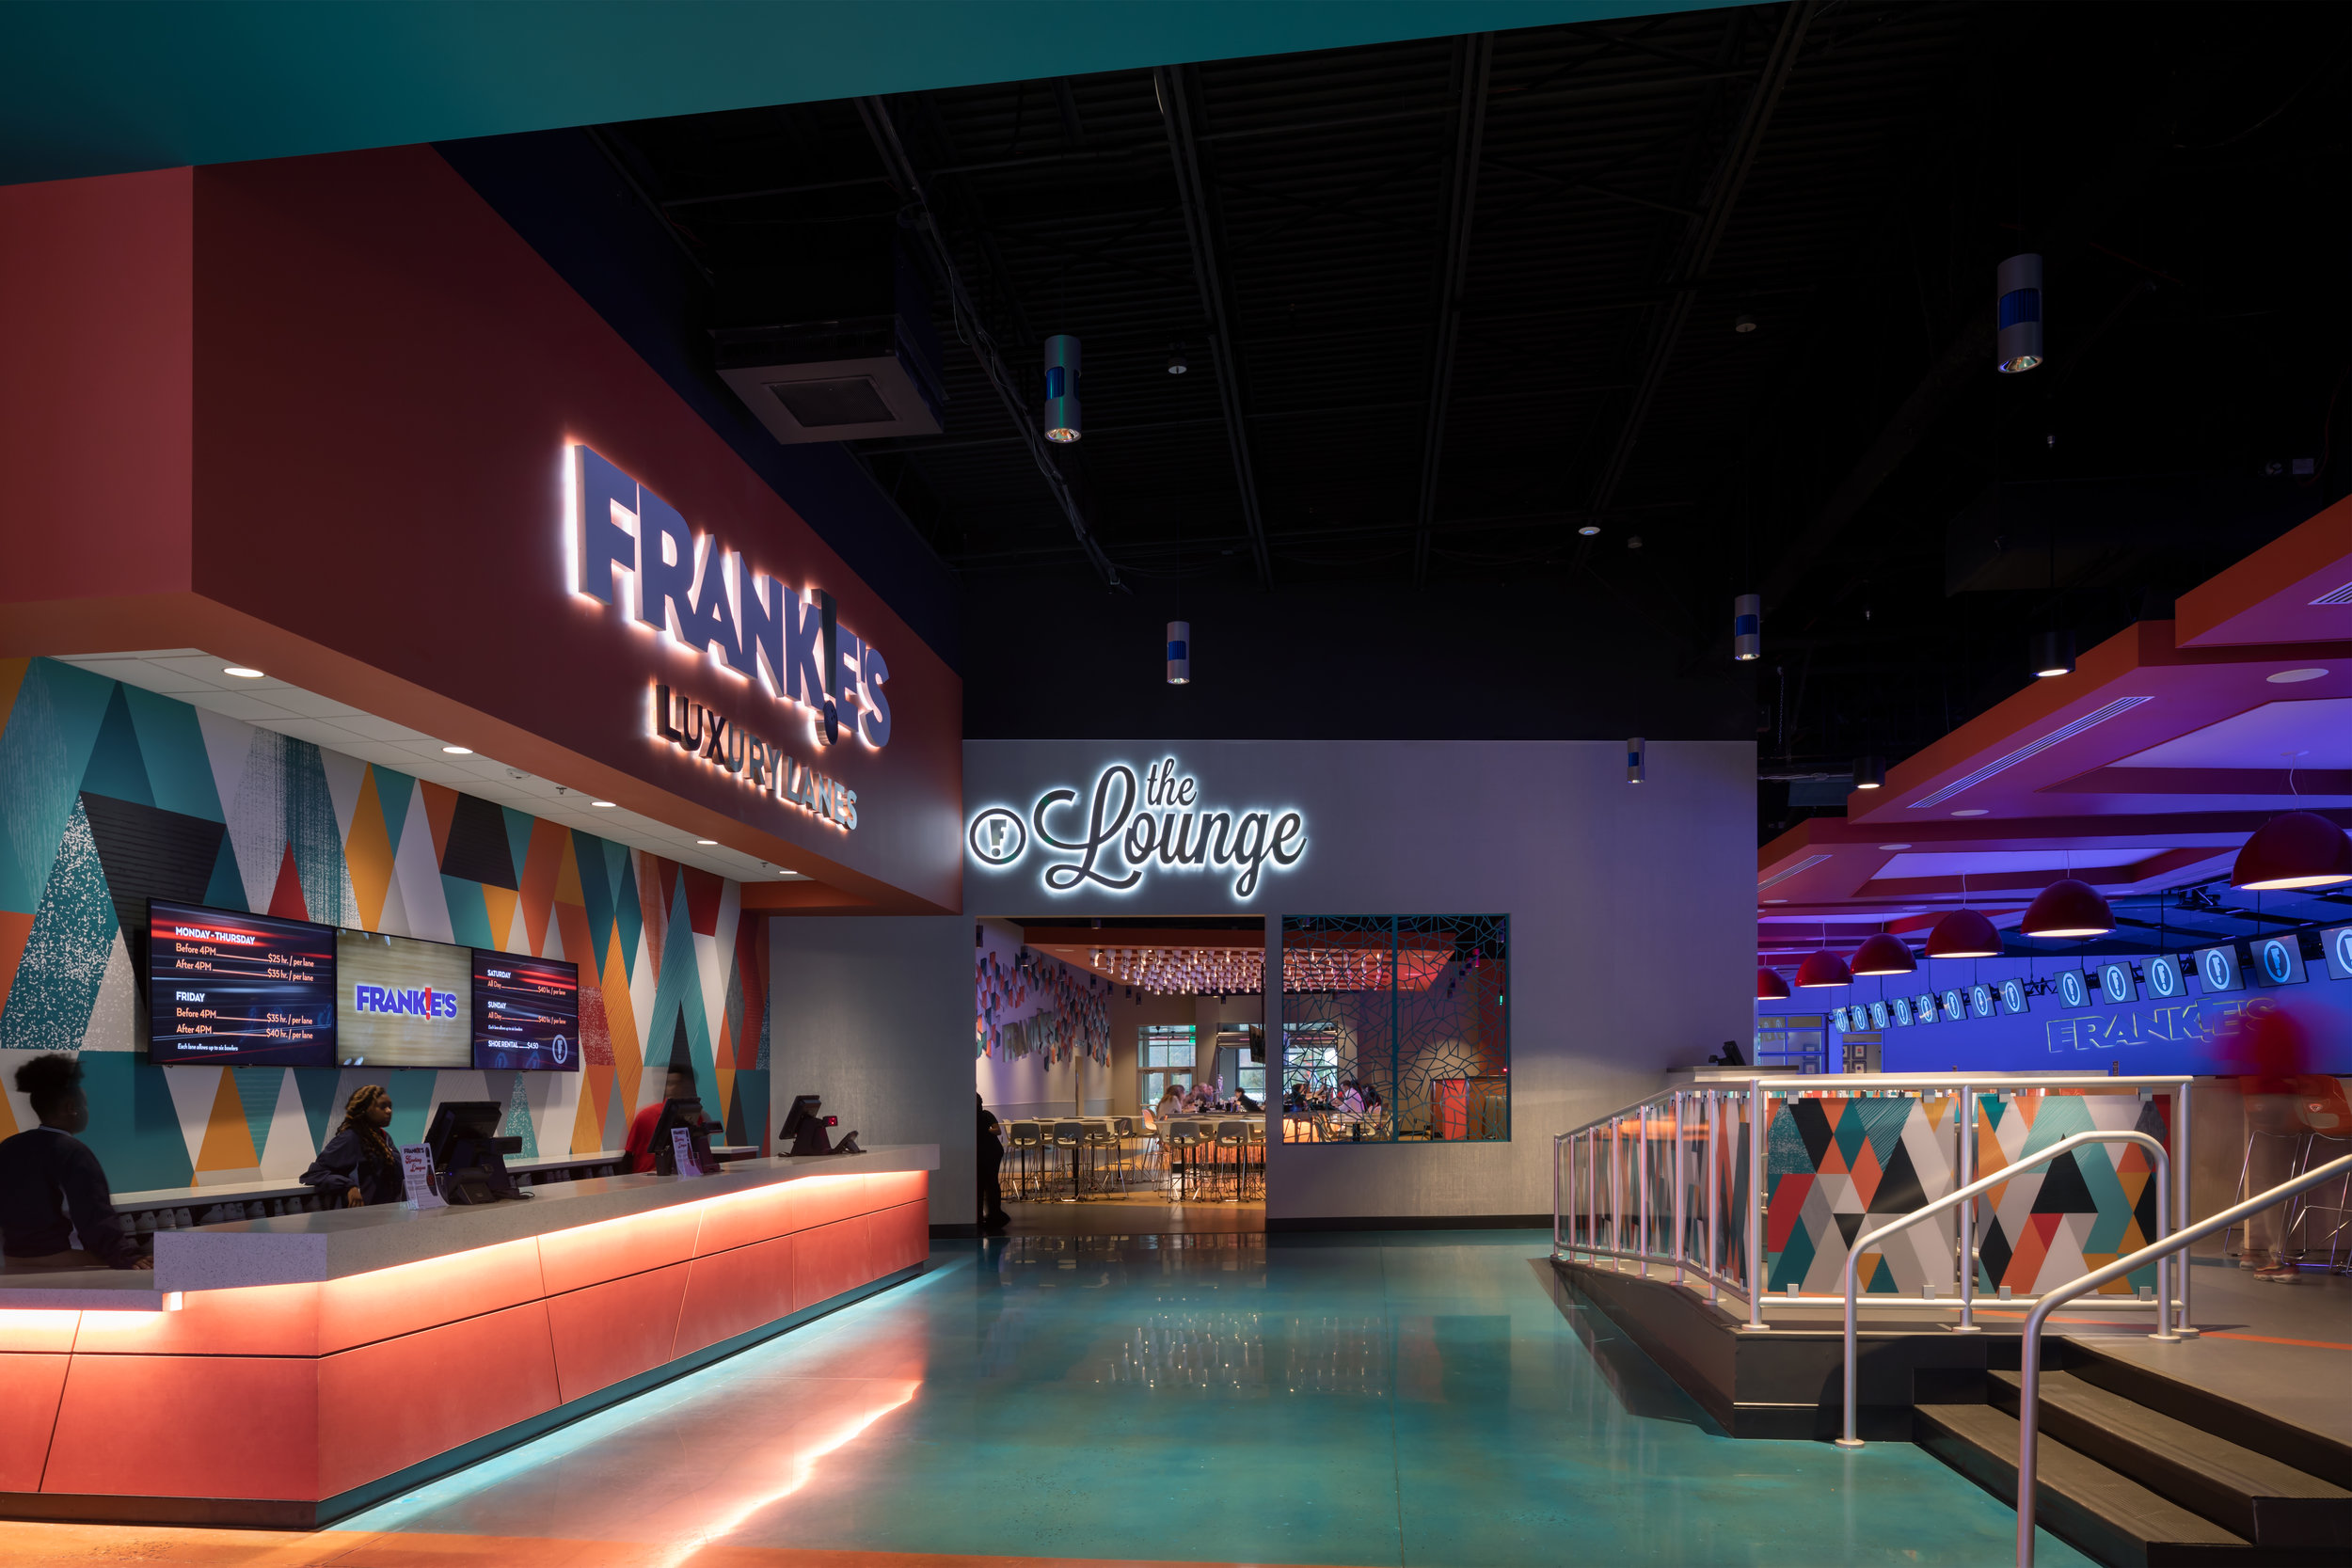 ADW-Entertainment-Frankie's-Fun-Park-Huntersville-NC-Interior-Bowling & Lounge Entrance.jpg